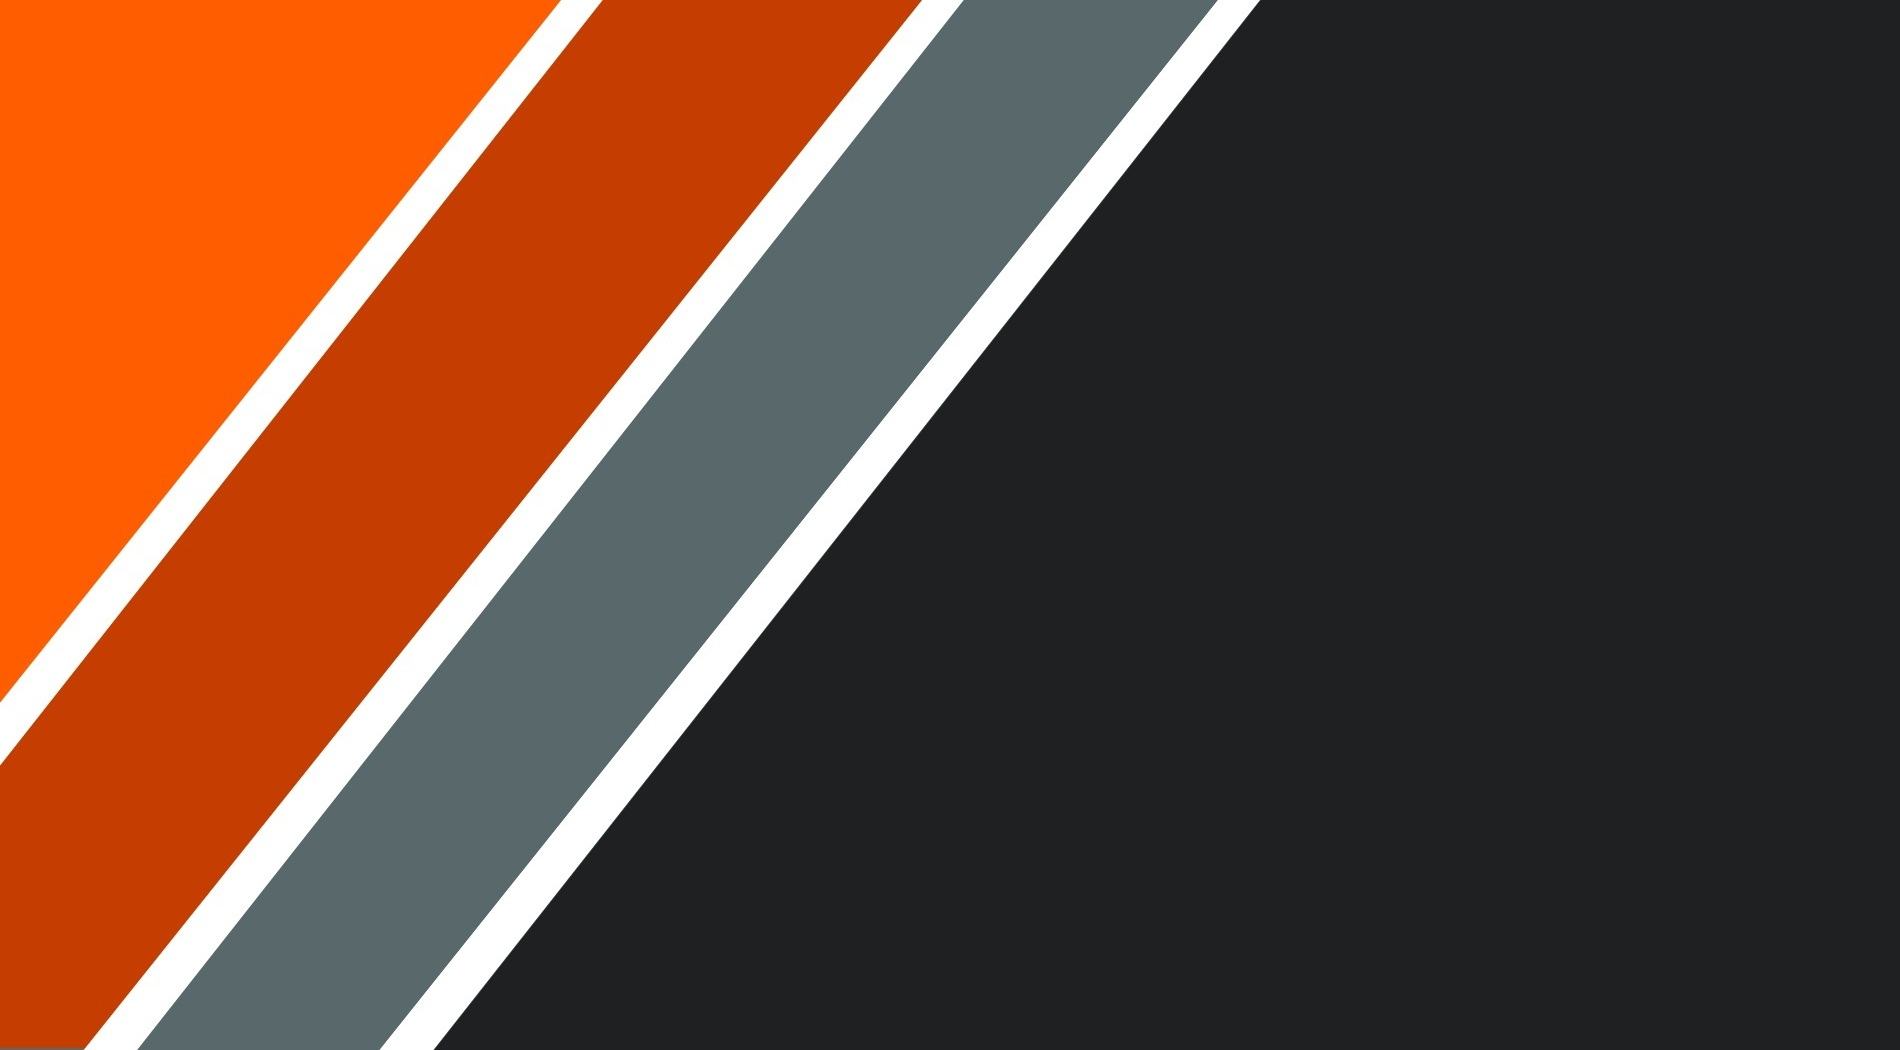 download orange and grey wallpaper gallery